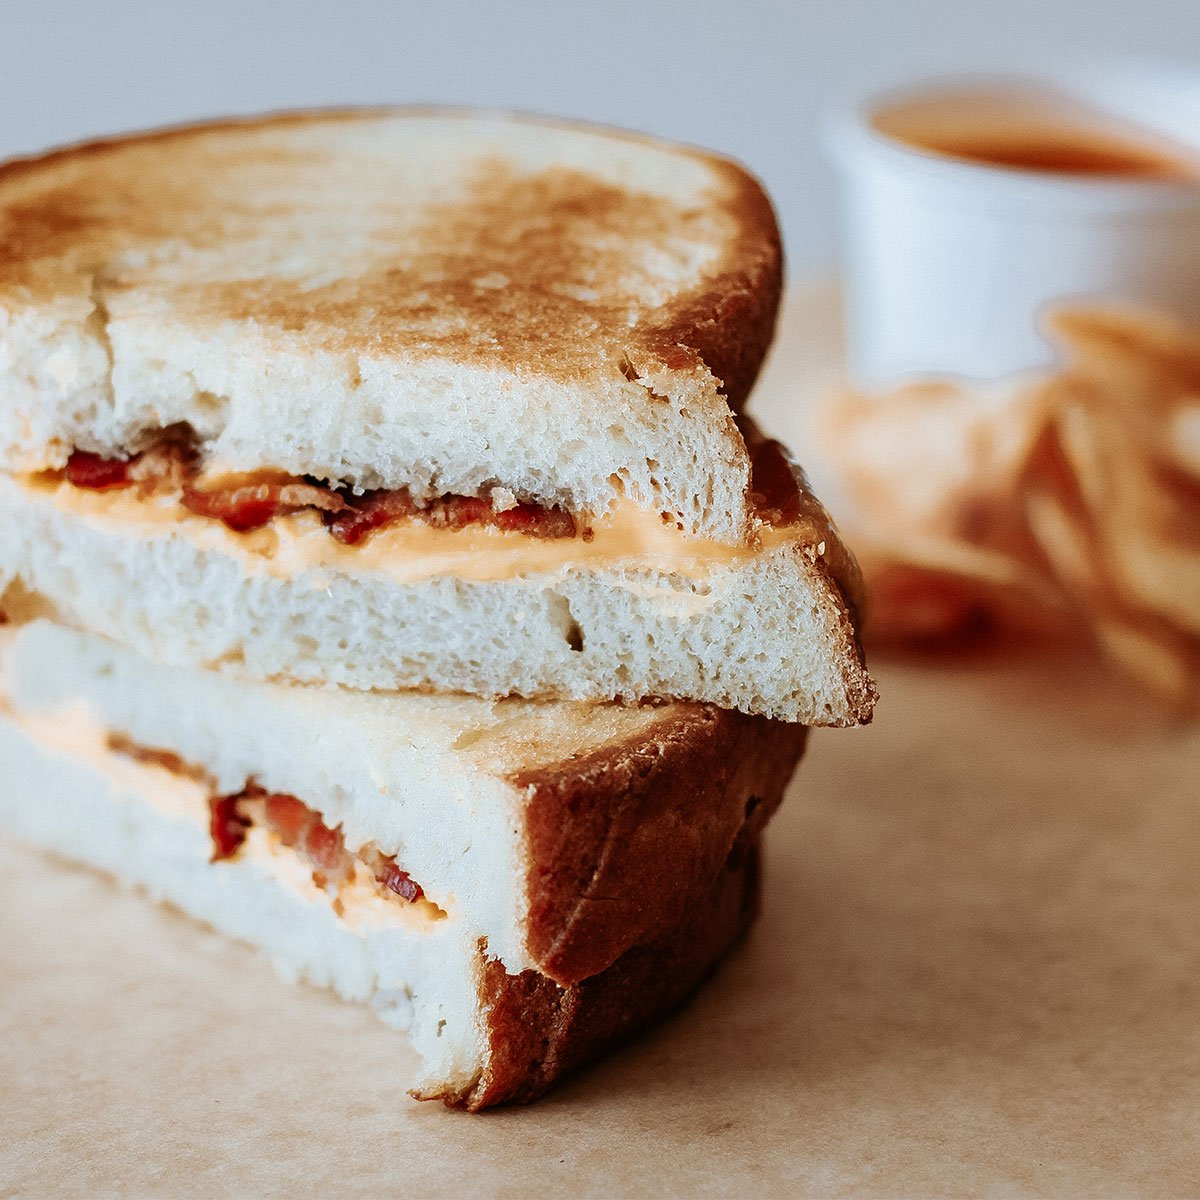 Bacon grilled cheese sandwich from Khush Roti